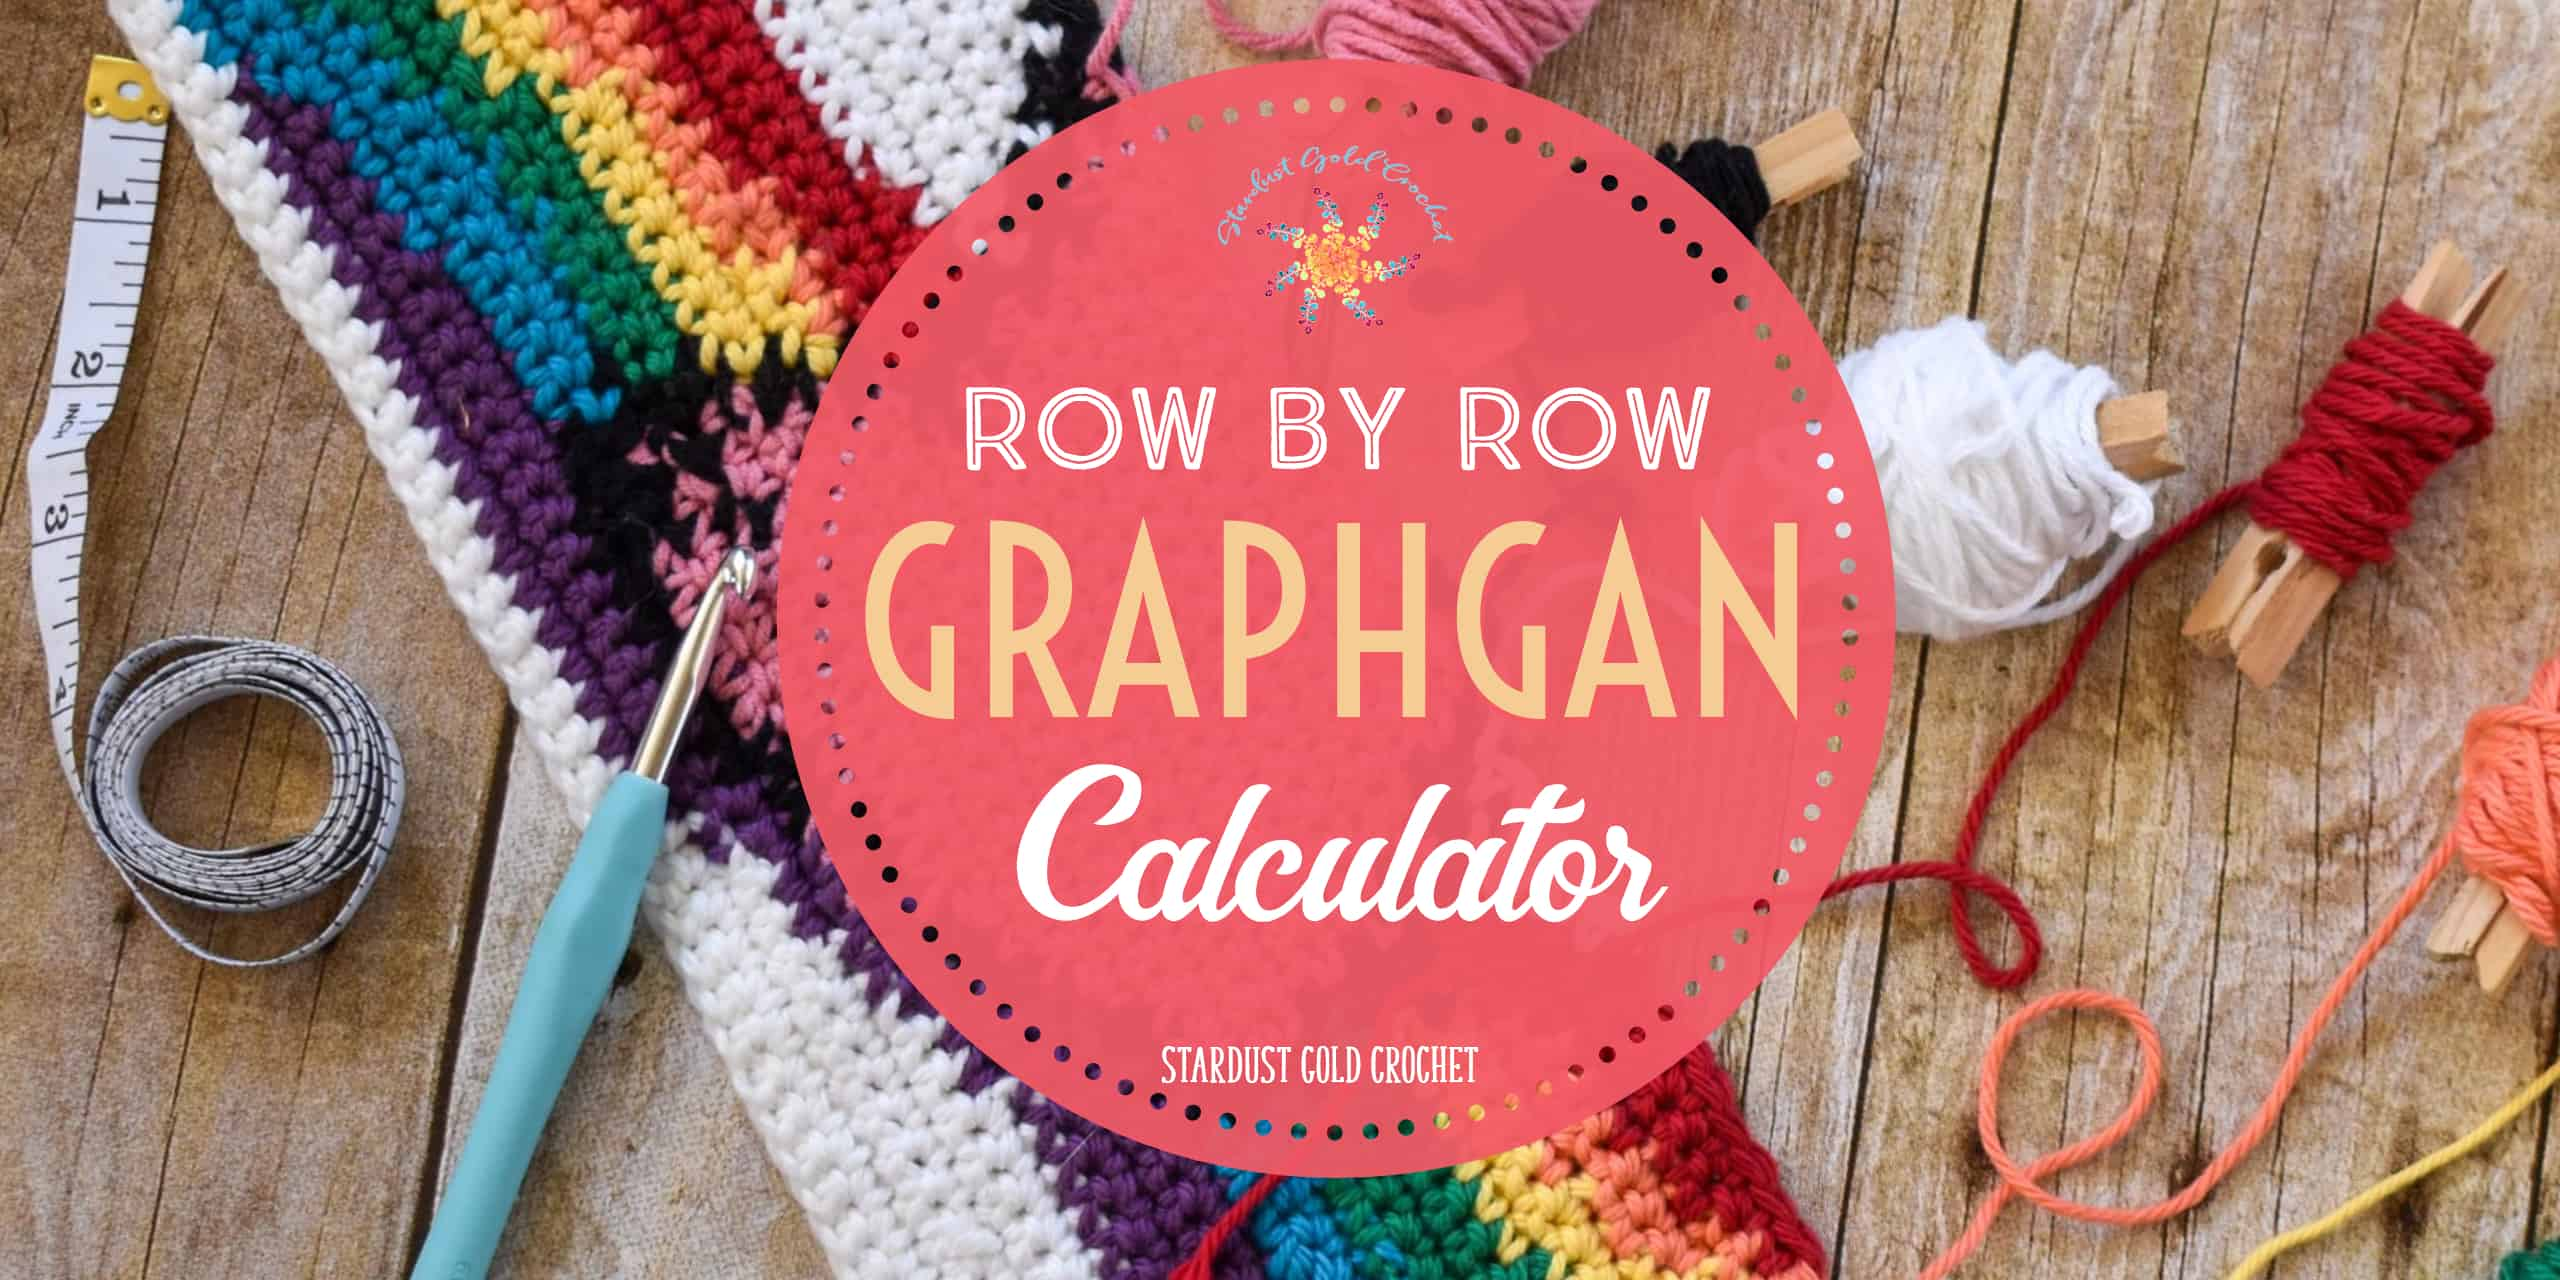 Row By Row Blanket Size Calculator This Is How Big You Graphgan Blanket Will Be Stardust Gold Crochet,How Long Do Cats Live Domestic